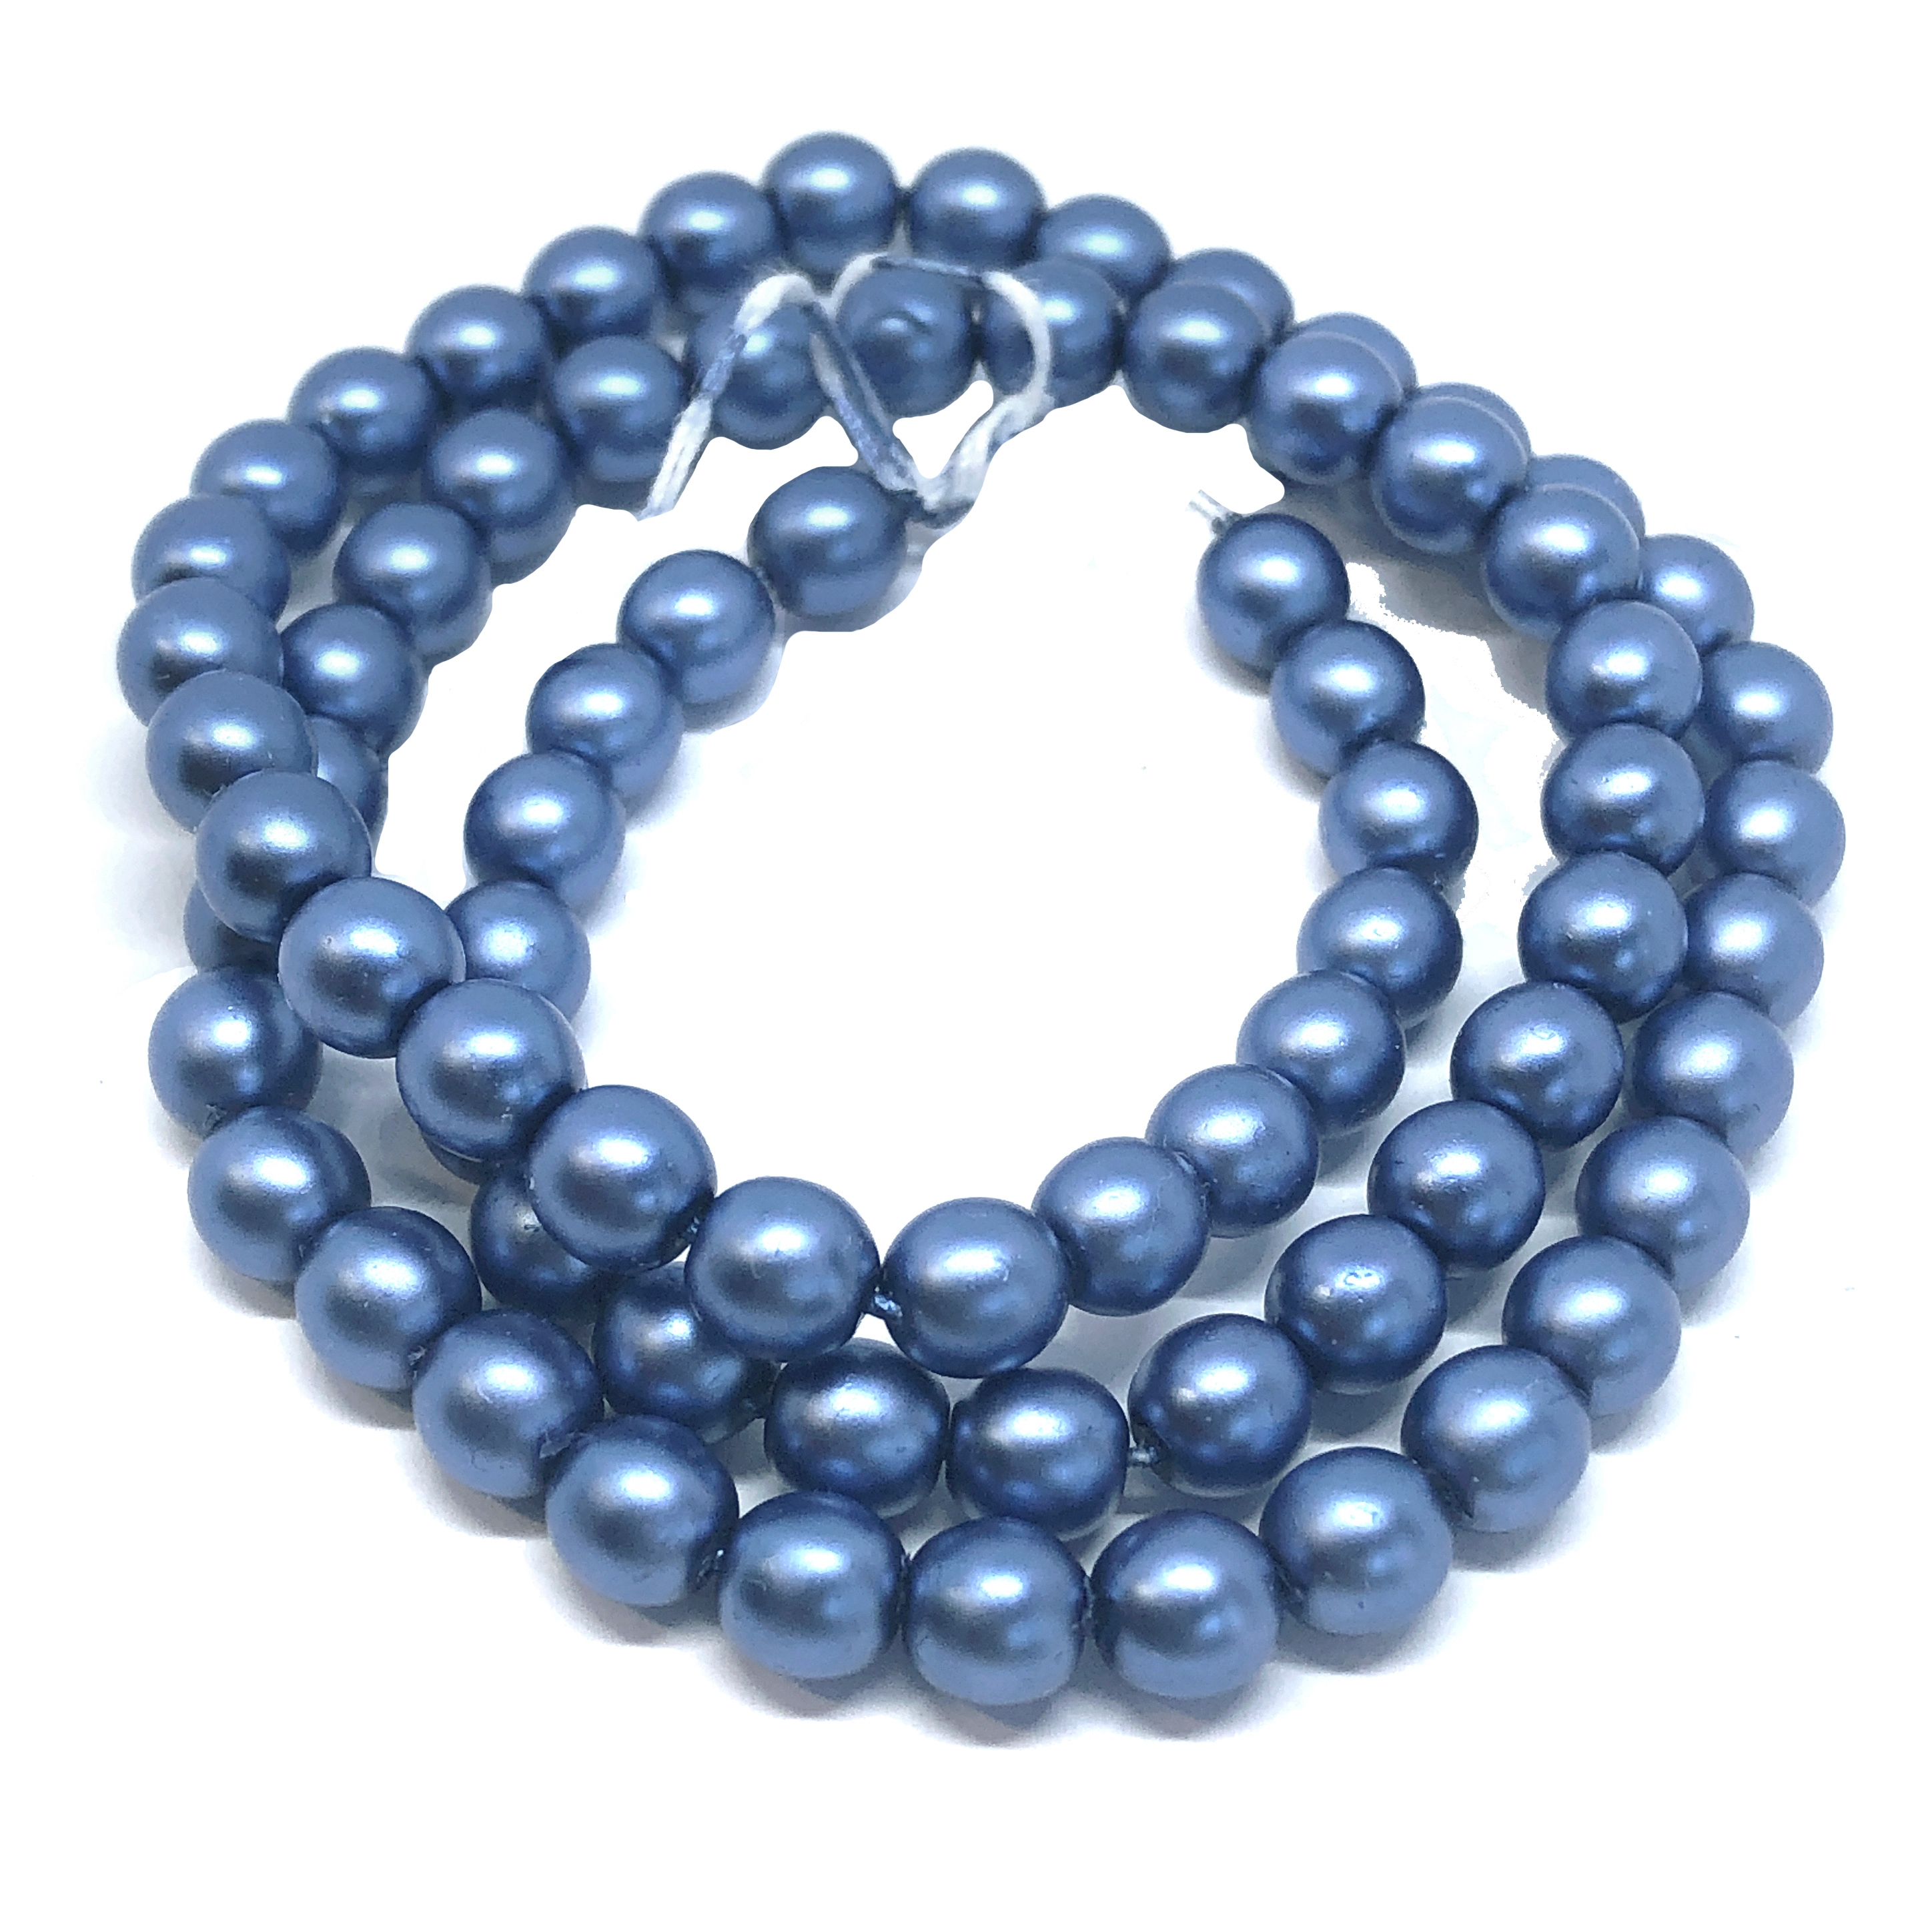 Persian blue pearl beads, 6mm bead, glass pearl, Czech, B'sue Boutiques, bead, jewelry making, beading supplies, vintage supplies, pearl, pearl beads, glass beads, jewelry supplies, jewelry beads, blue beads, 09672